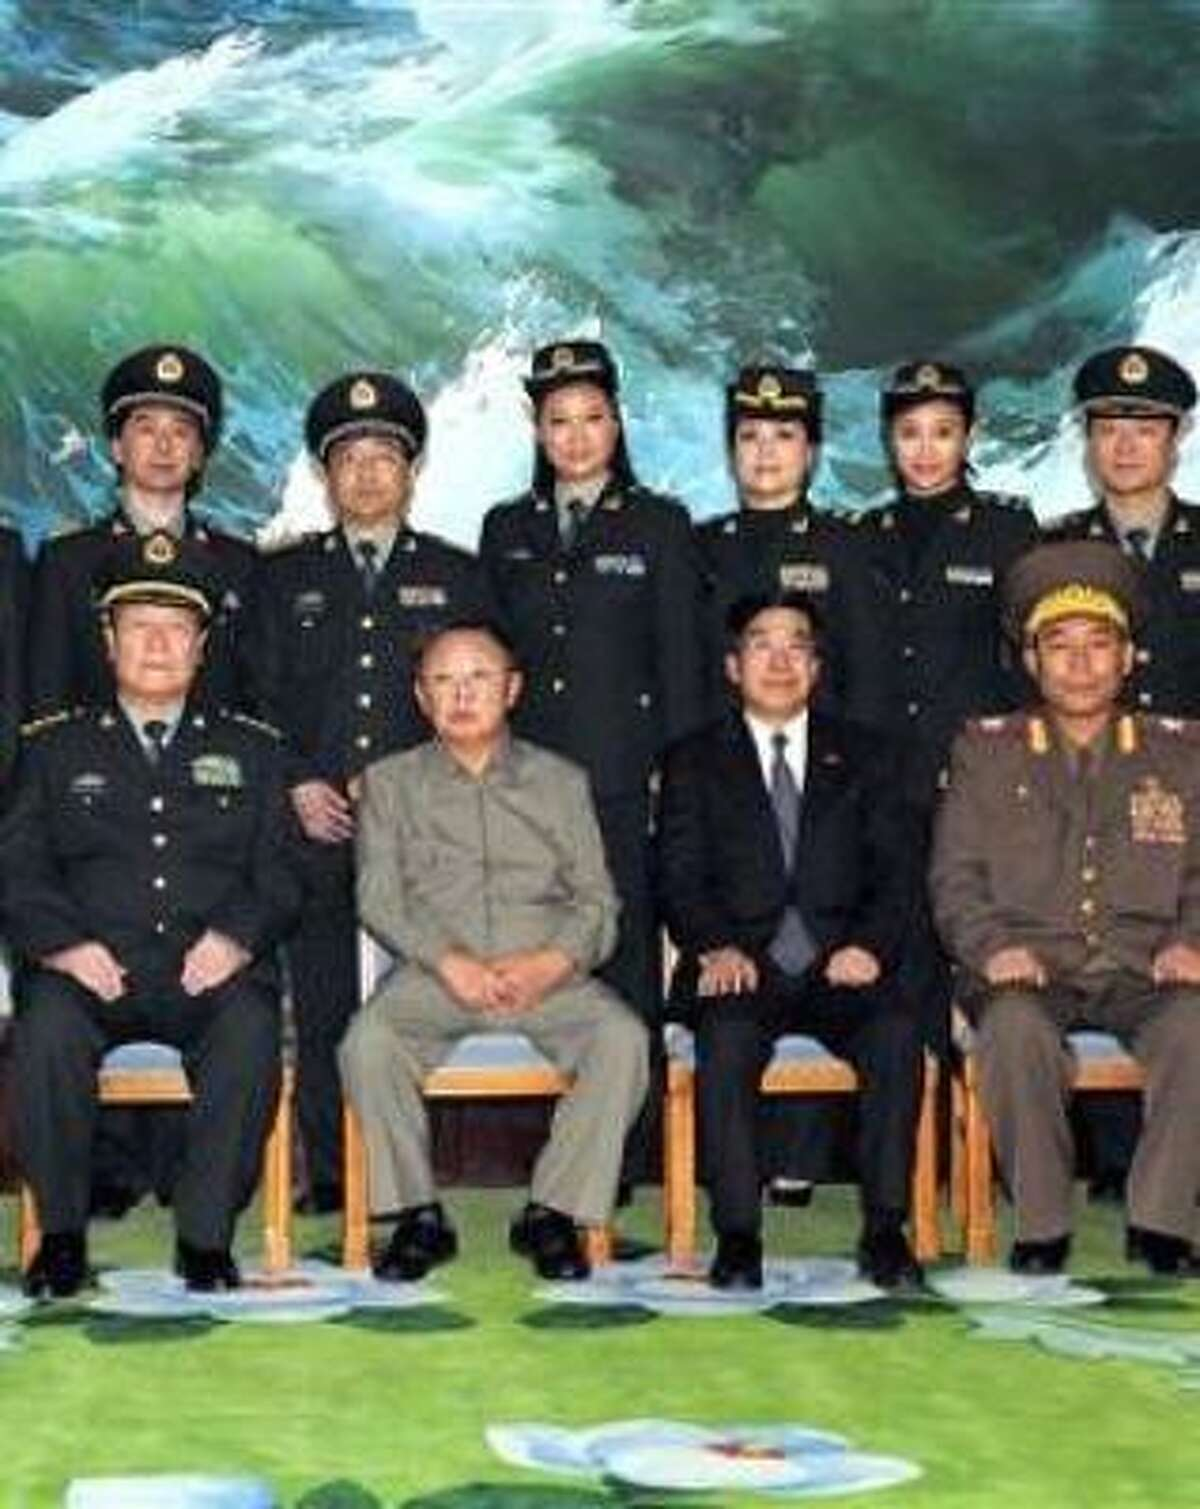 Military and other leaders in North Korea.